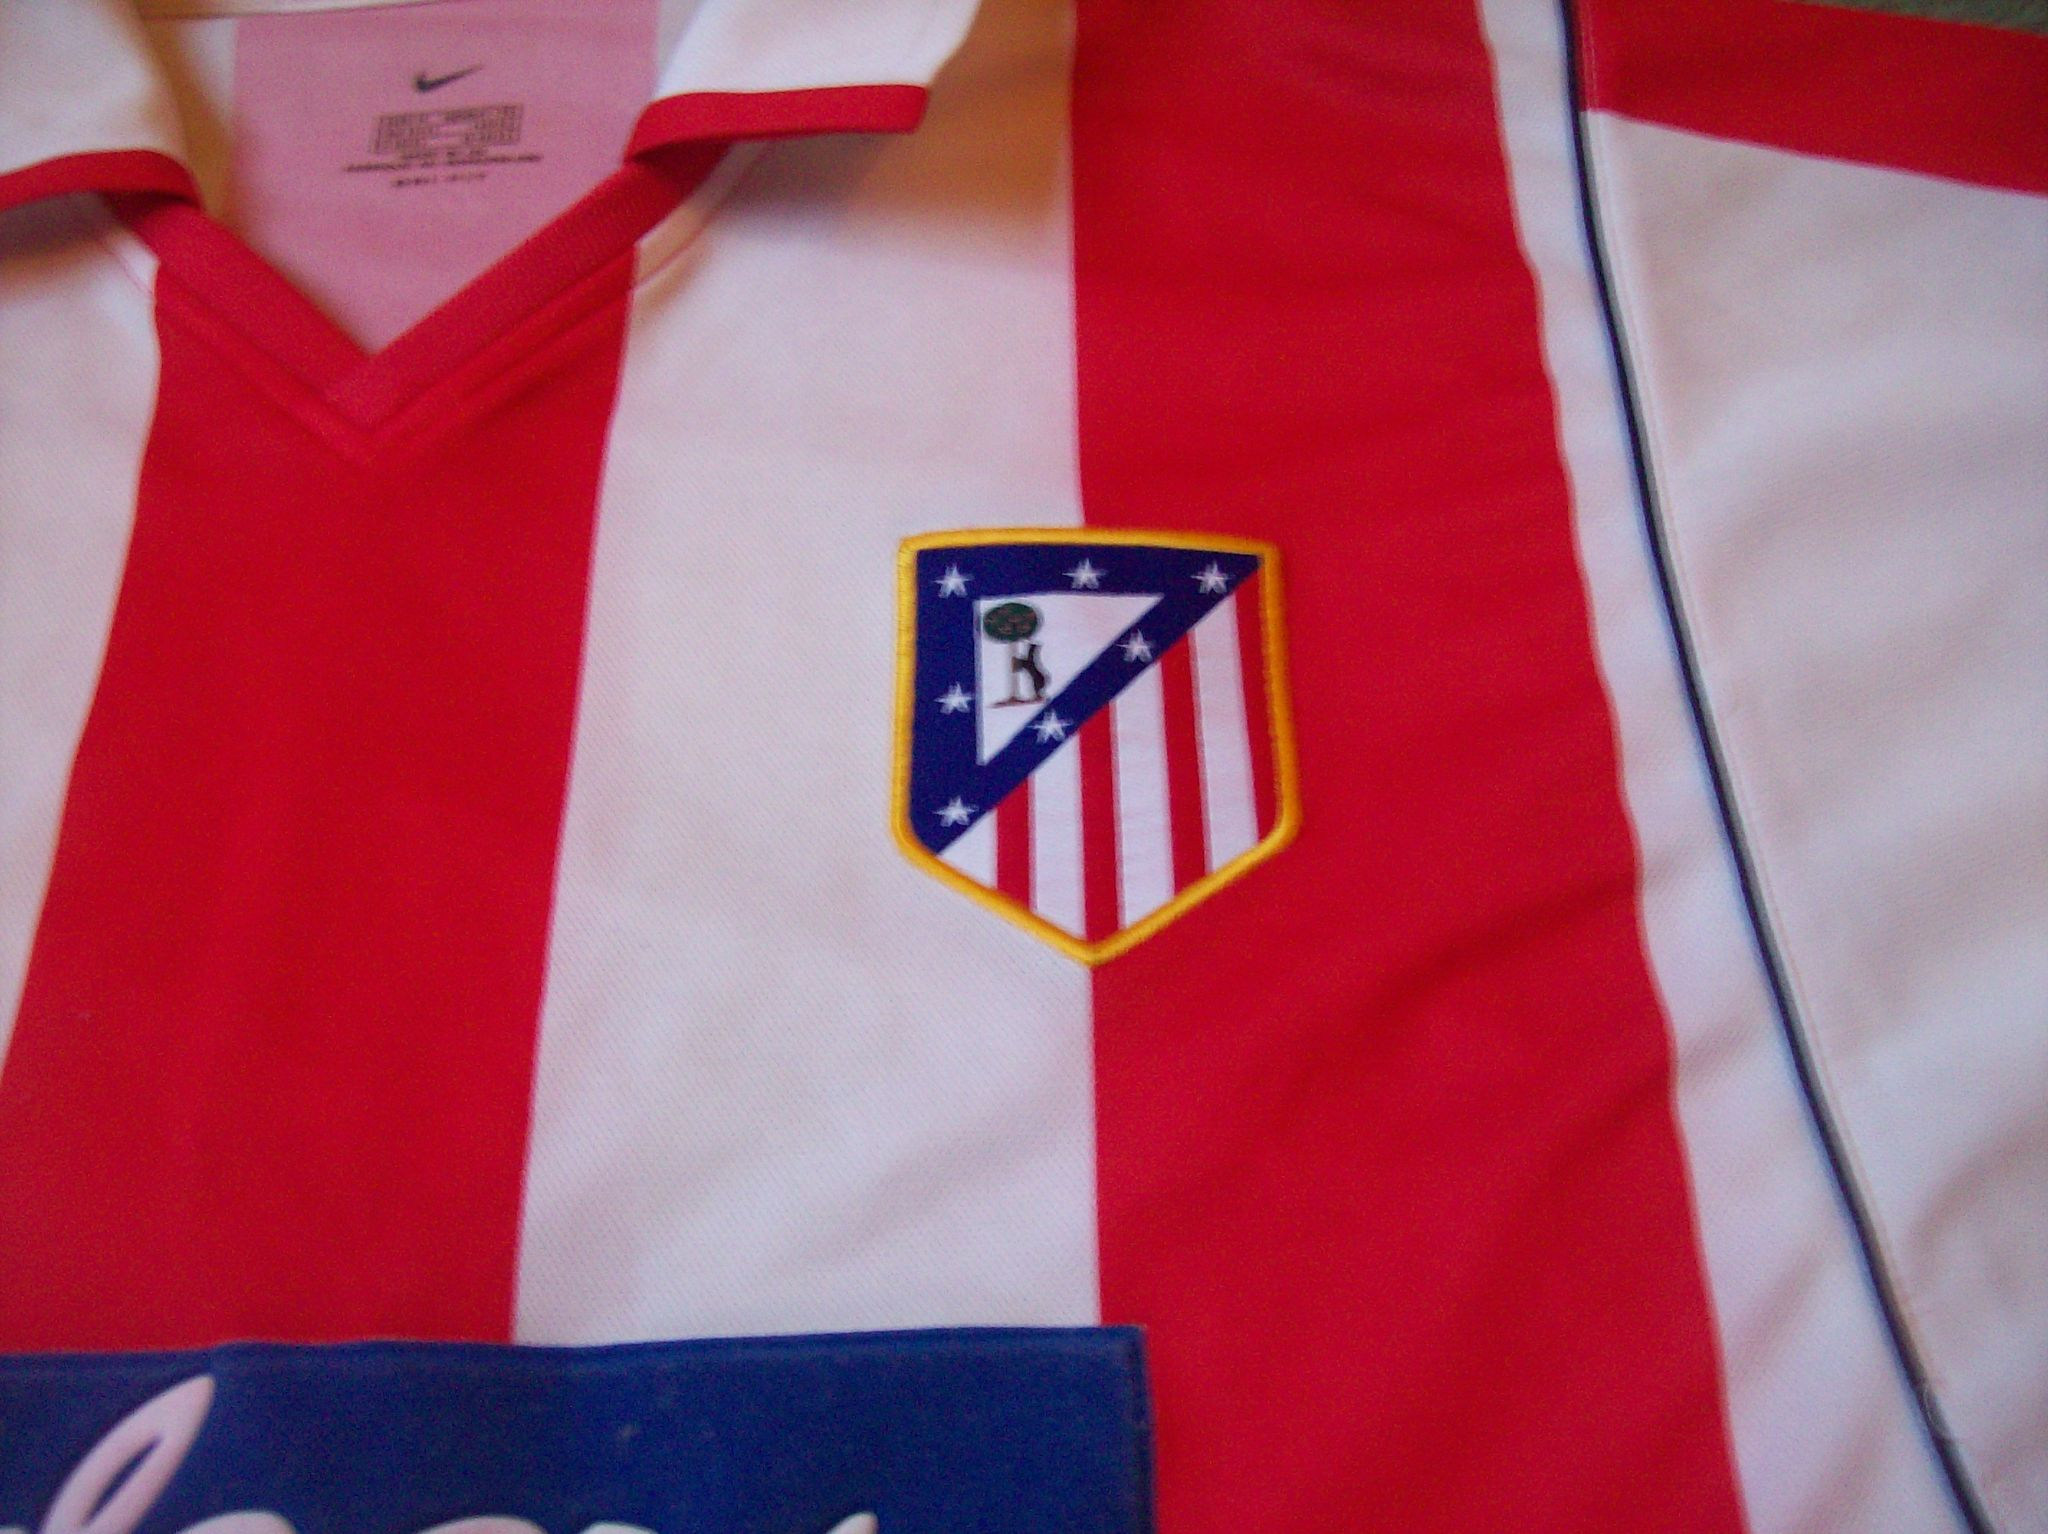 dc7e5dc542c Global Classic Football Shirts   2009 Atletico Madrid   Vintage Old Retro  Soccer Jerseys